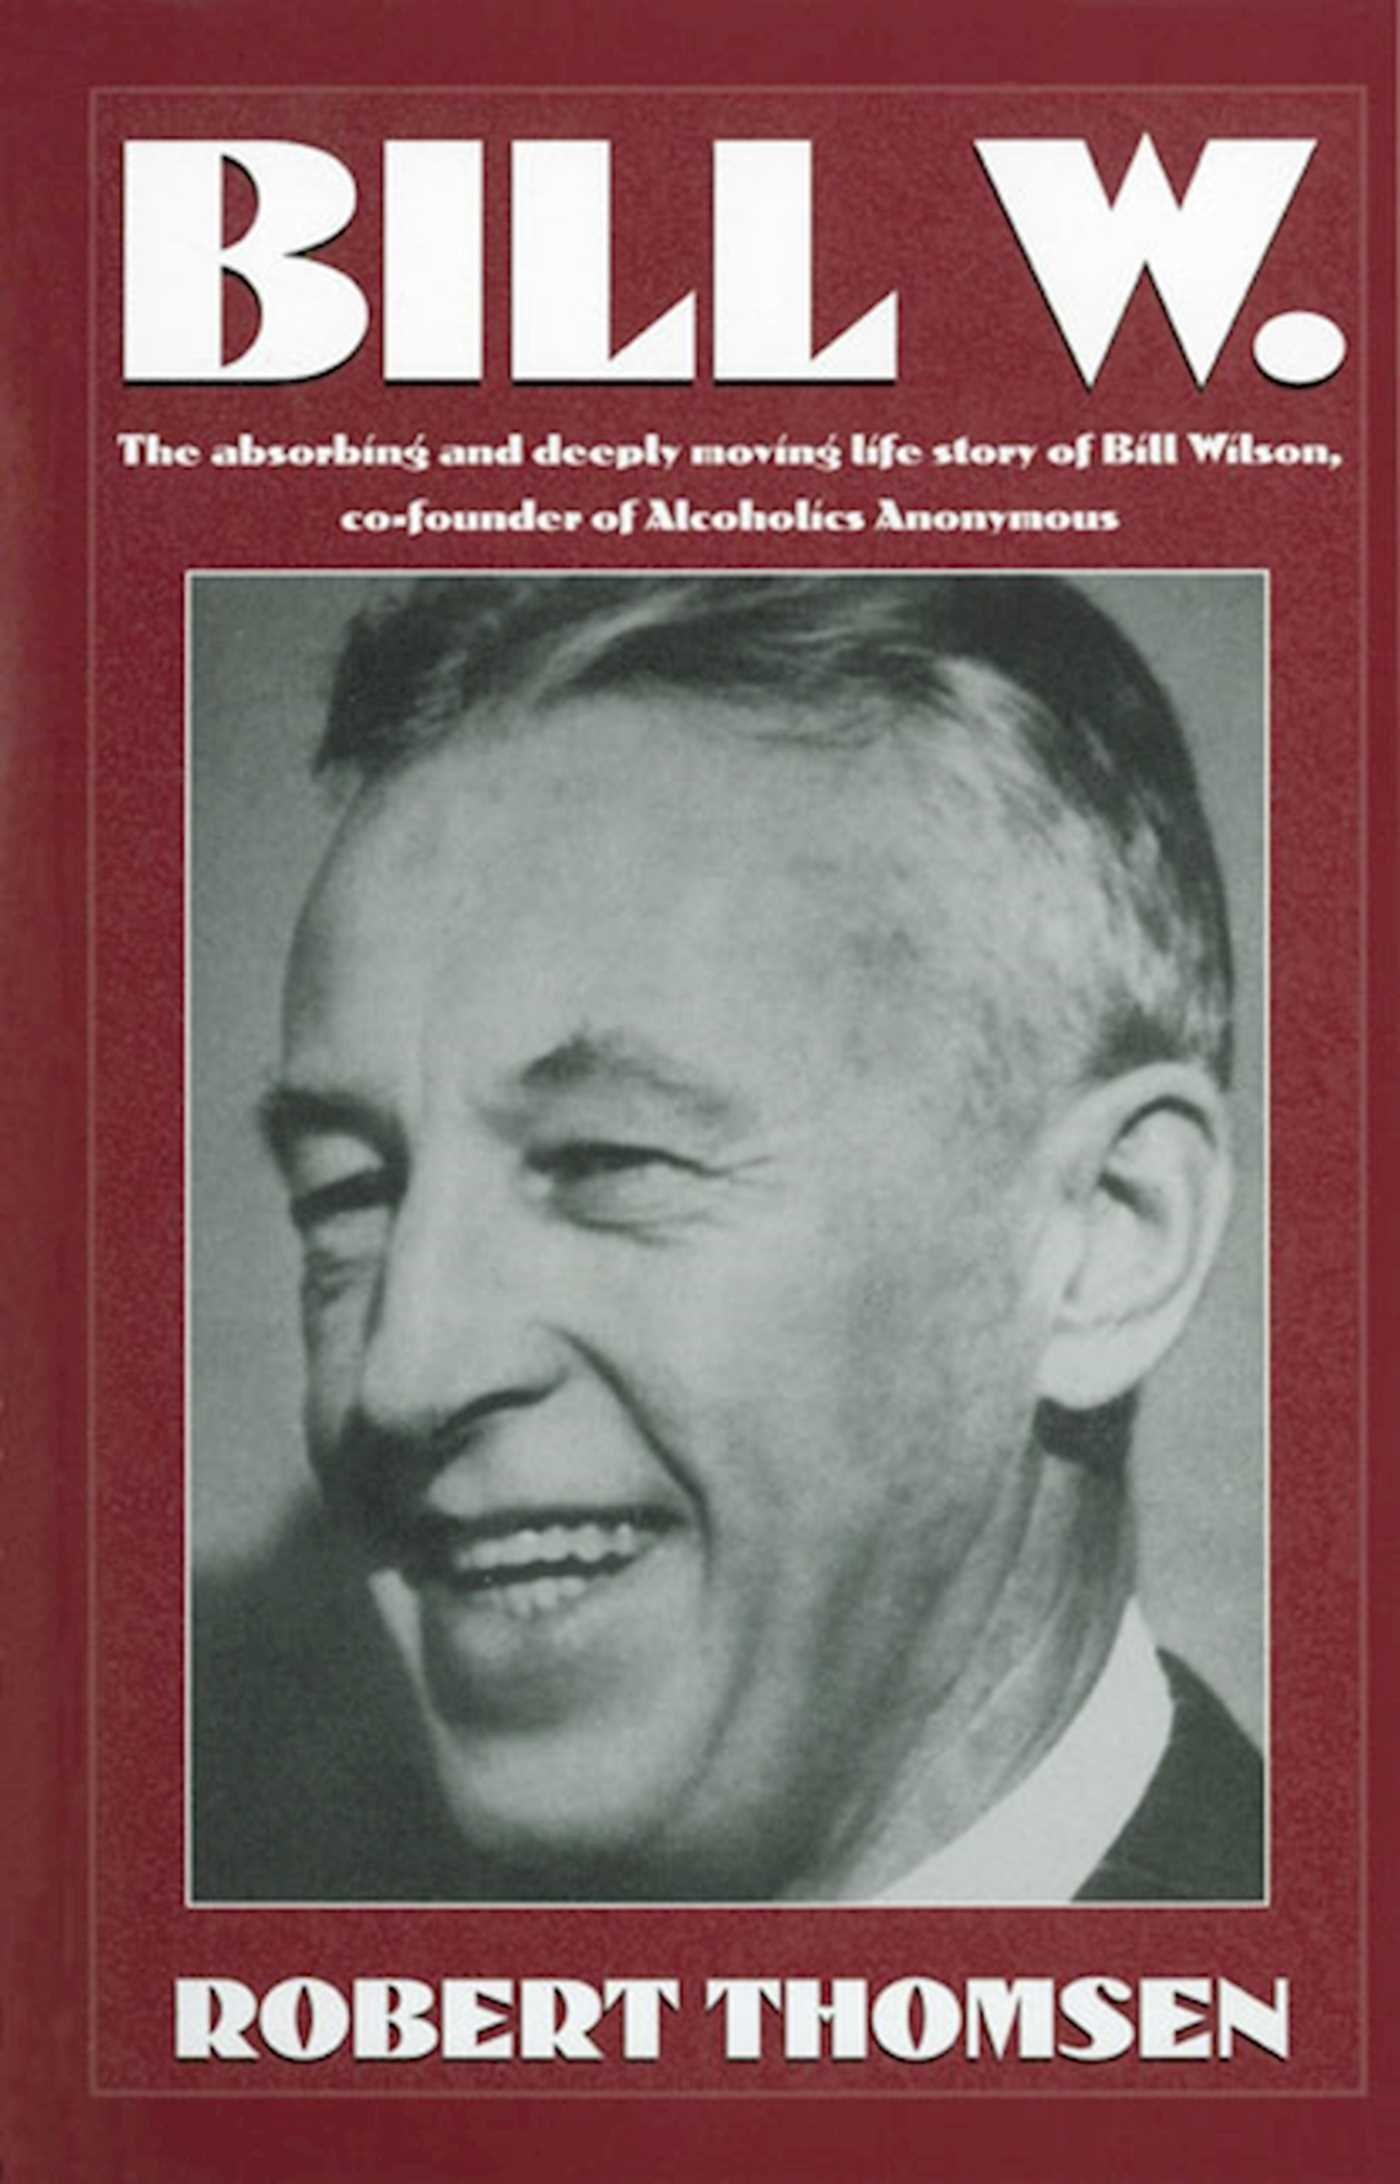 Download Bill W: The absorbing and deeply moving life story of Bill Wilson, co-founder of Alcoholics Anonymous ebook